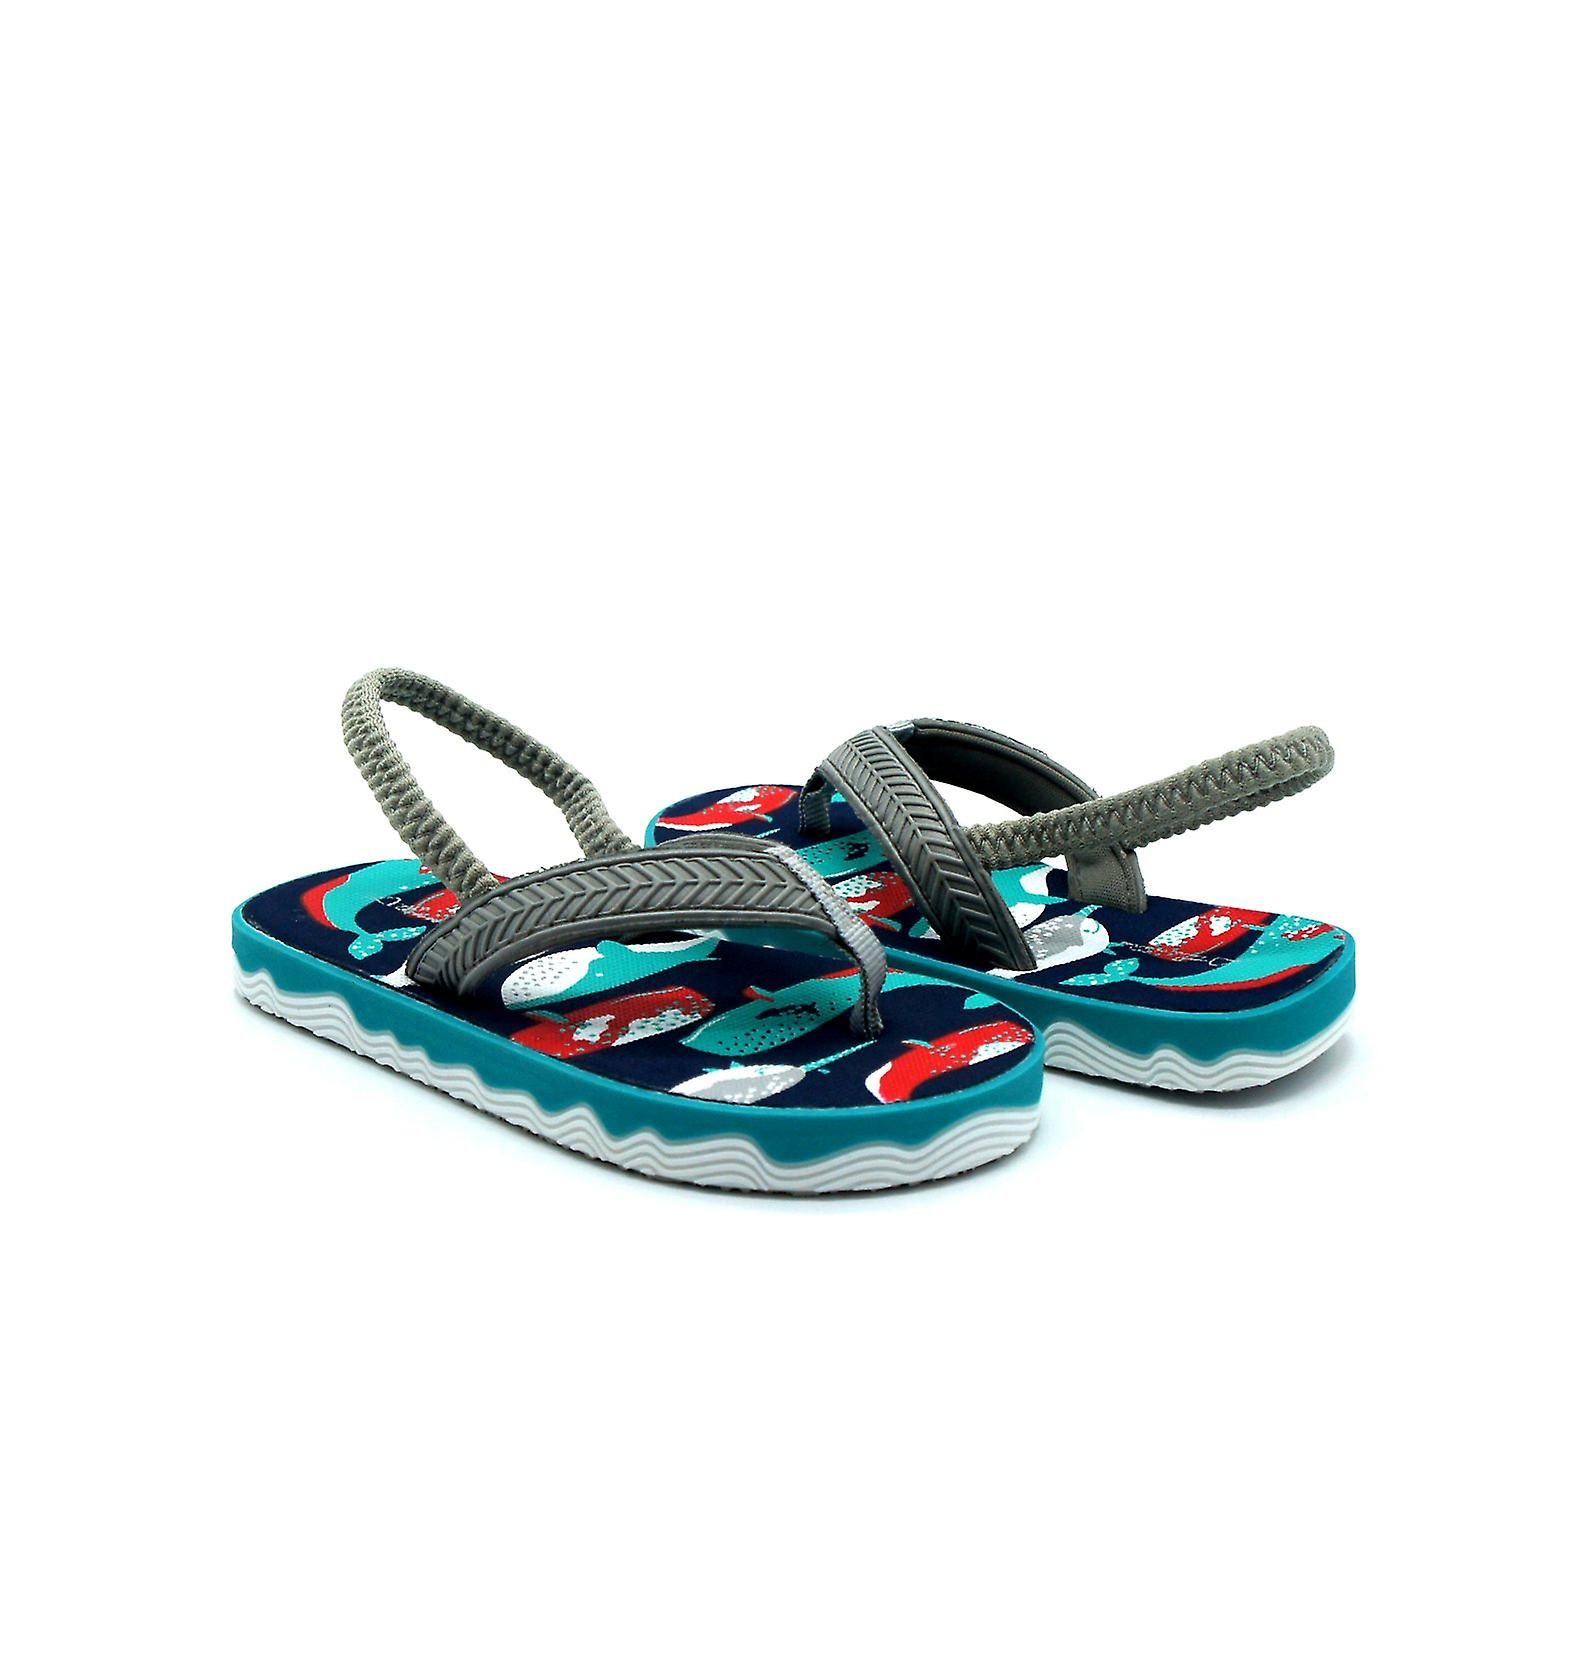 Atlantis Shoes Kids Boys Supportive Cushioned Comfortable Sandals Flip Flops Ocean Discovery Green